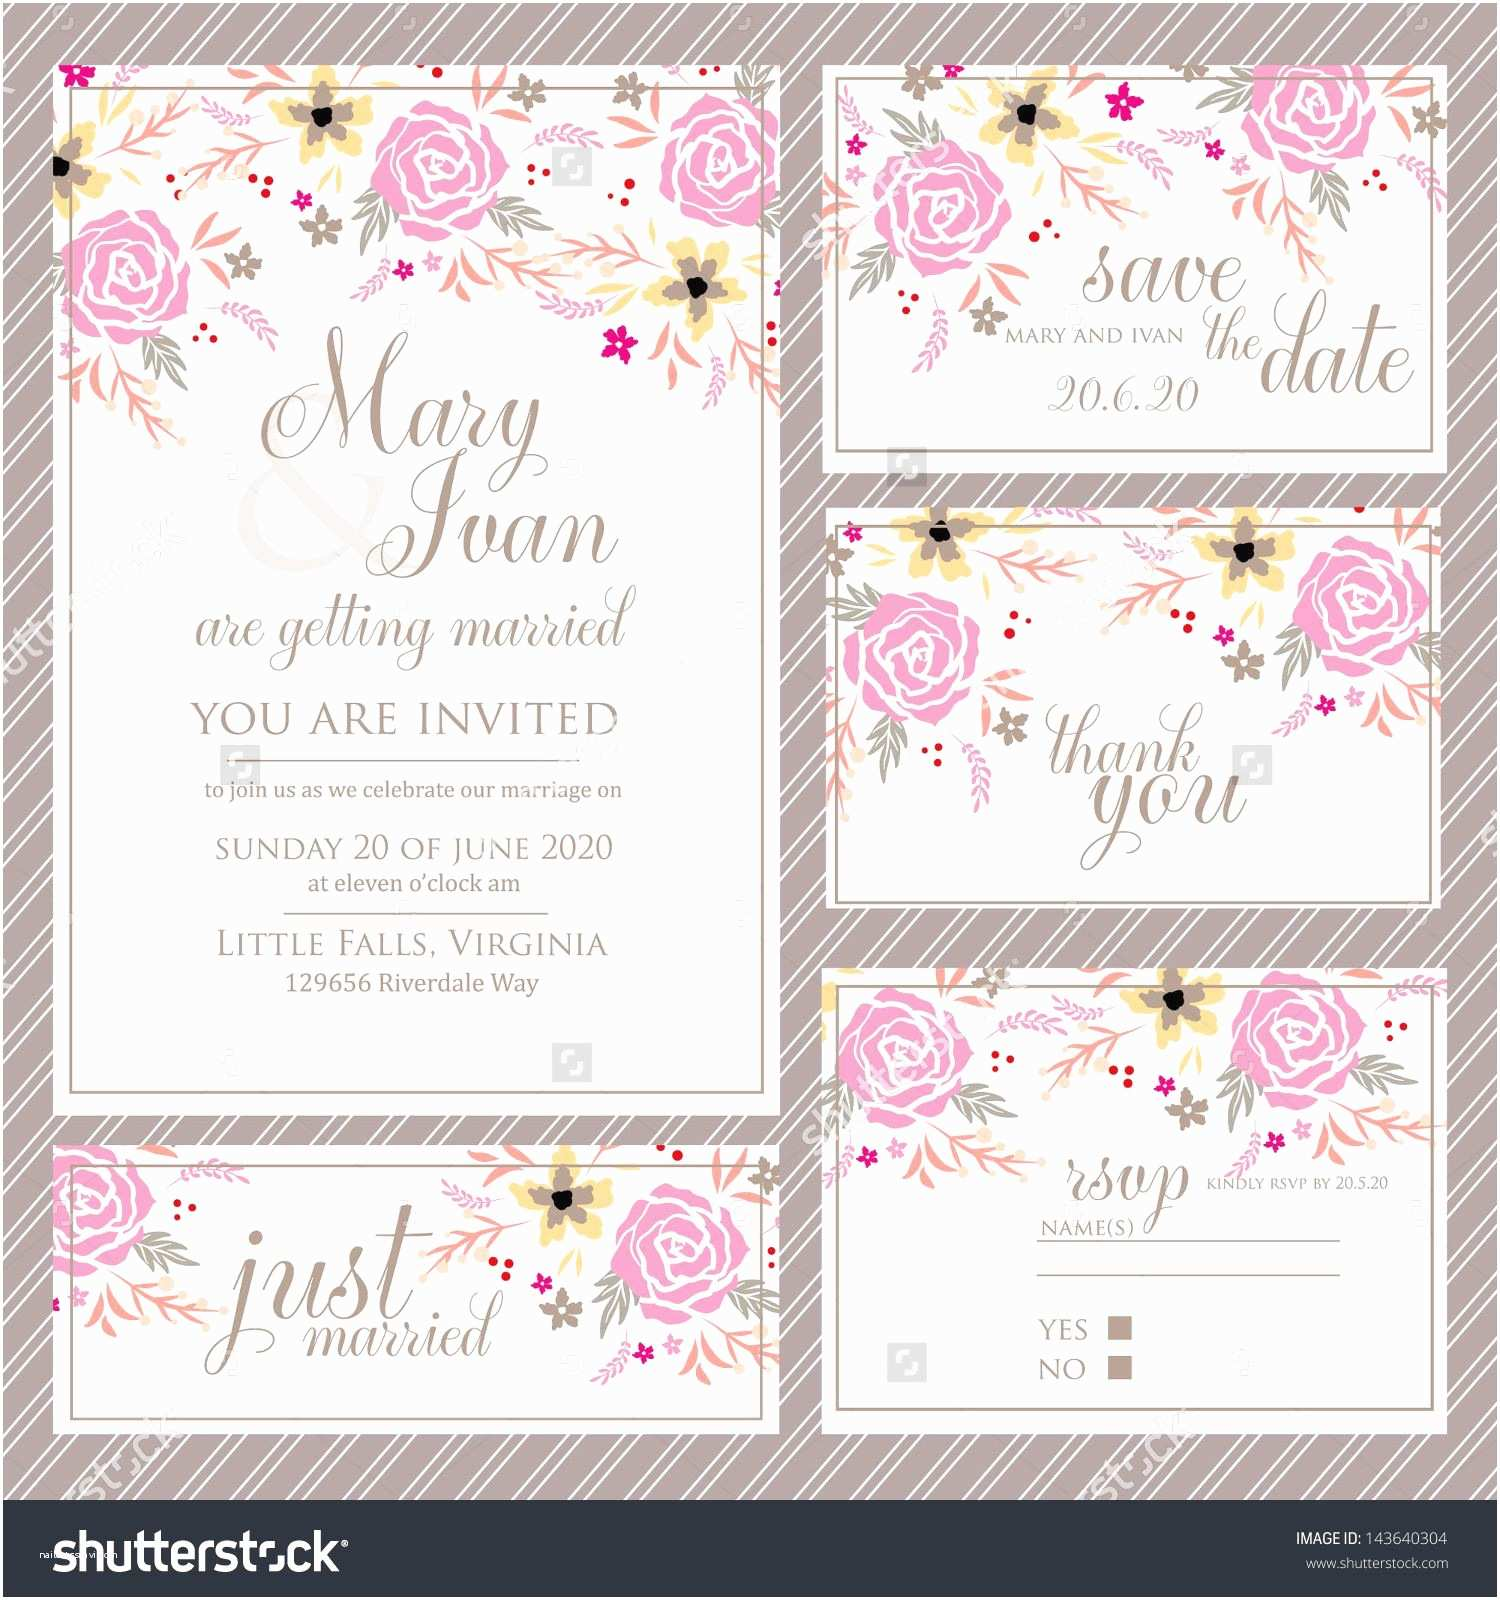 Cheap Wedding Invitations with Rsvp Cards Included Wedding Invitations with Rsvp Cards Included Wedding Invitations with Rsvp Cards Package